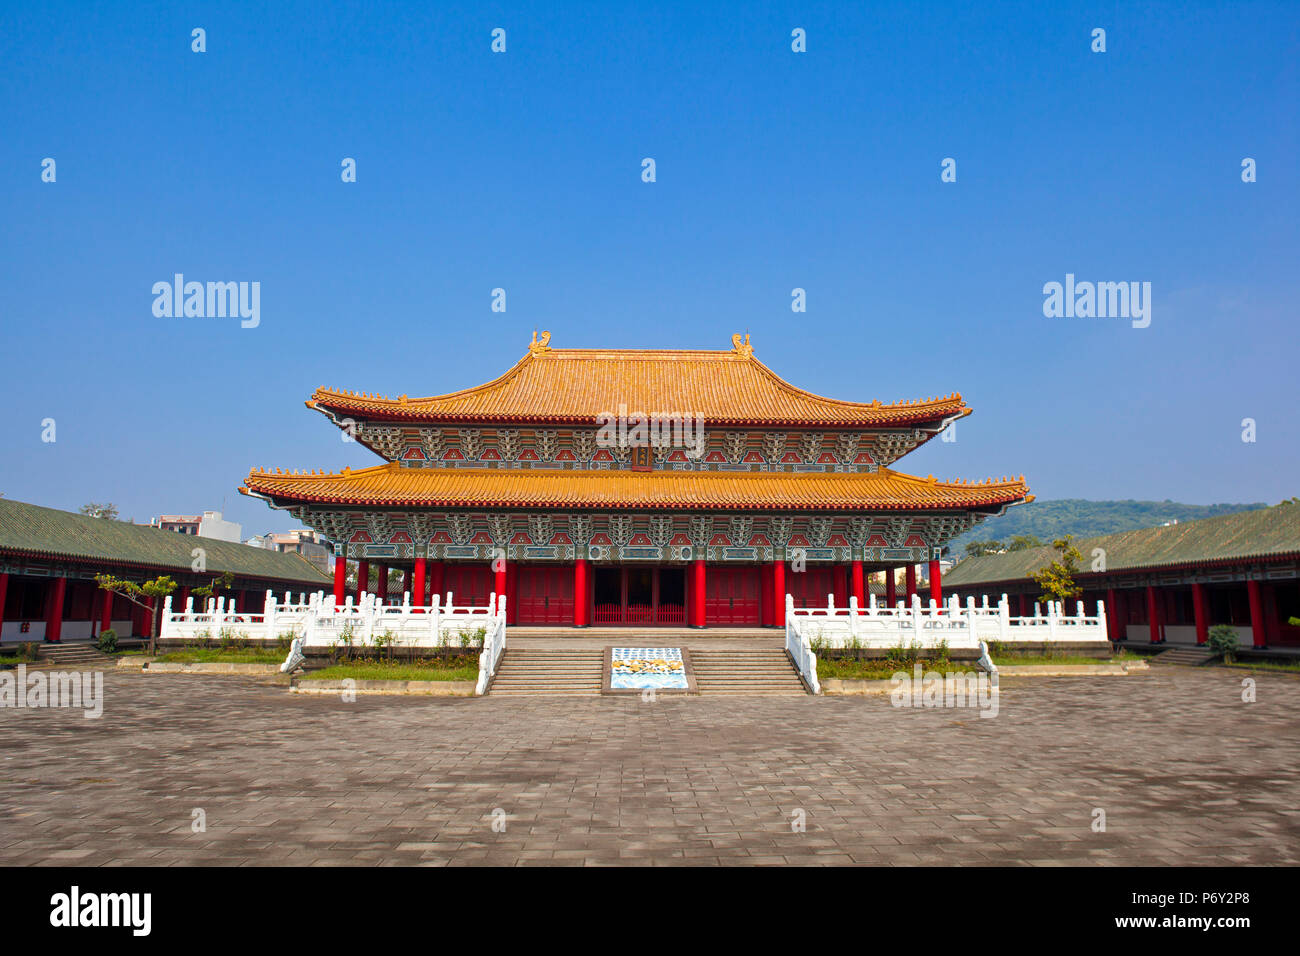 Taiwan, Kaohsiung, Lotus pond, Zuoying Confucius Temple - Stock Image